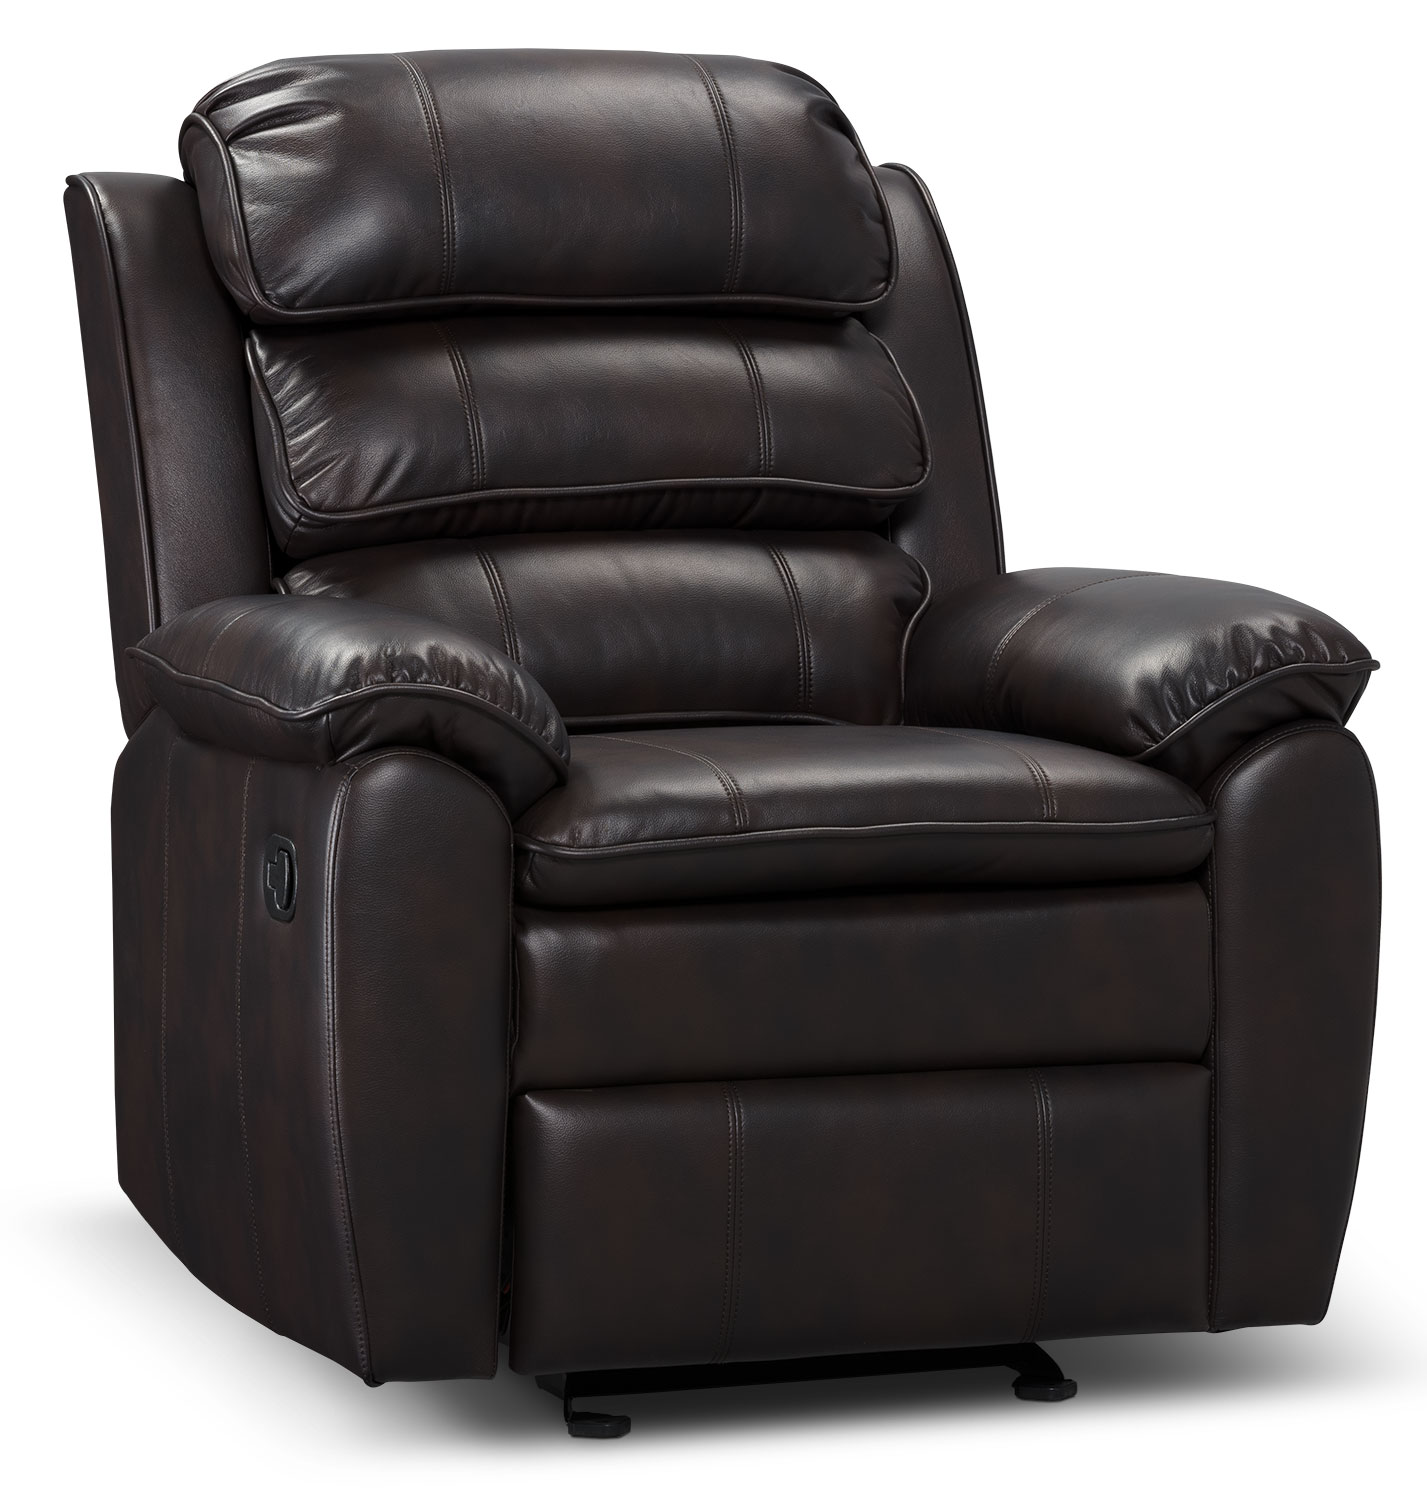 Composite Leather Sofa: Adam Leather-Look Fabric Reclining Glider Chair